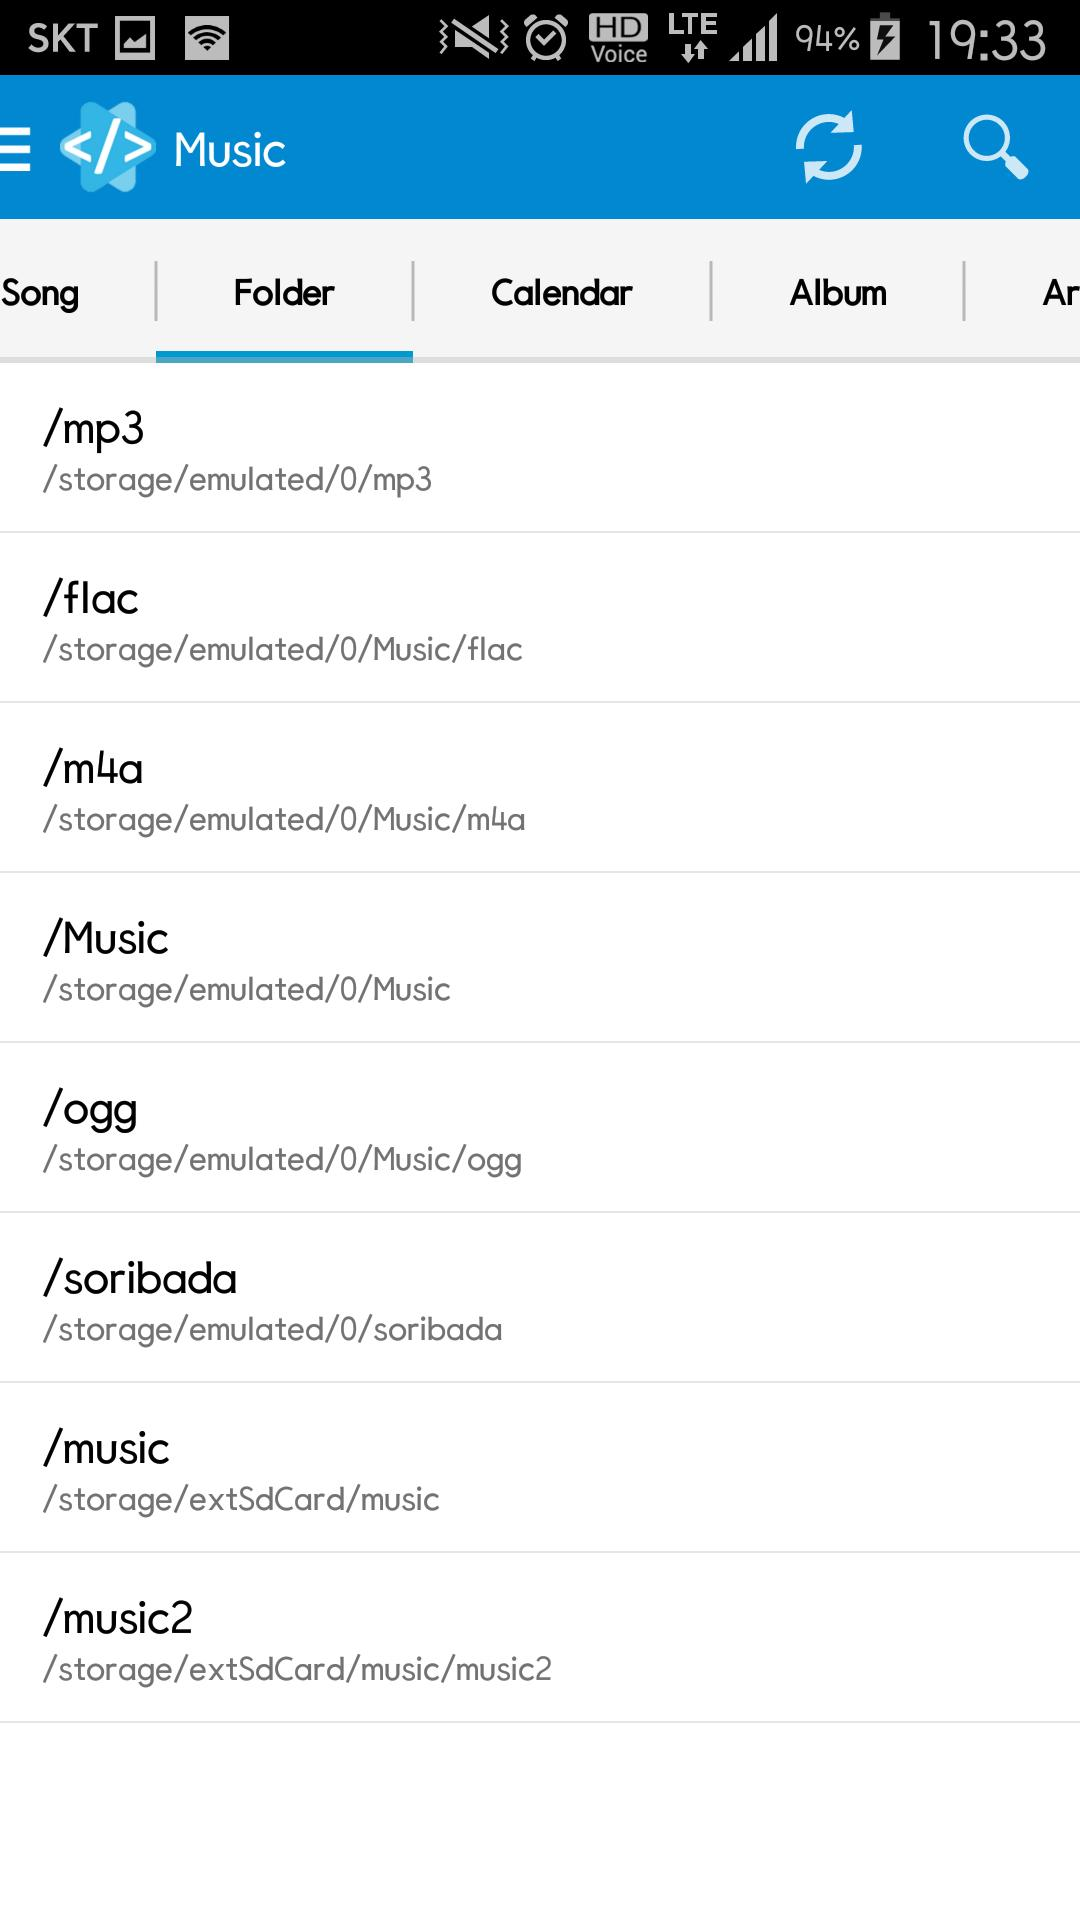 Star Music Tag Editor for Android - APK Download